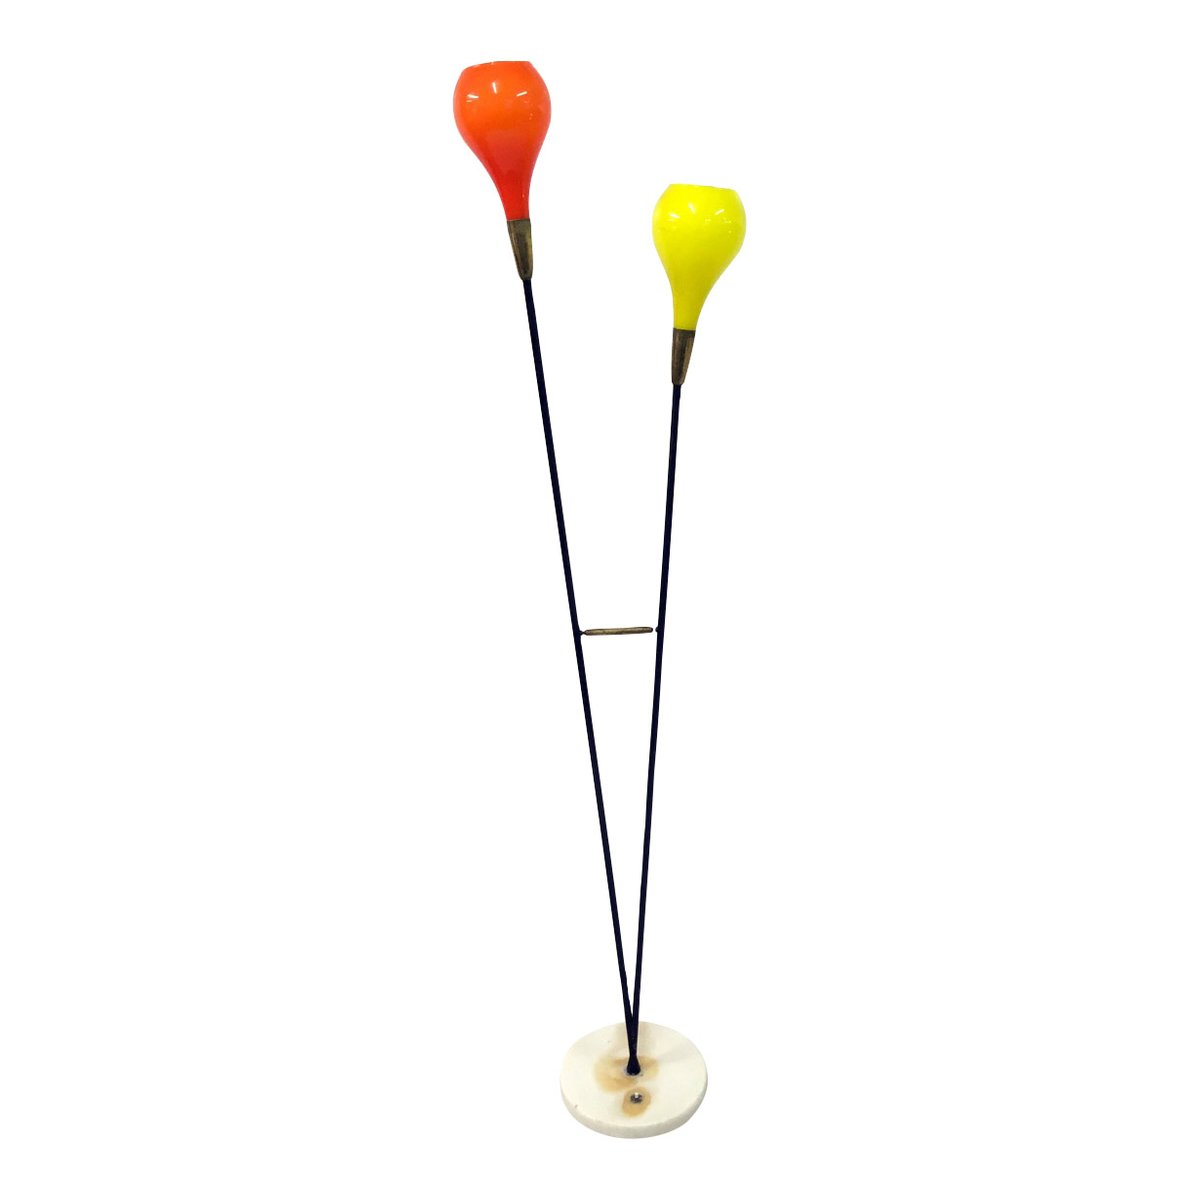 Vintage italian colored glass floor lamp for sale at pamono for Floor lamp glass stem